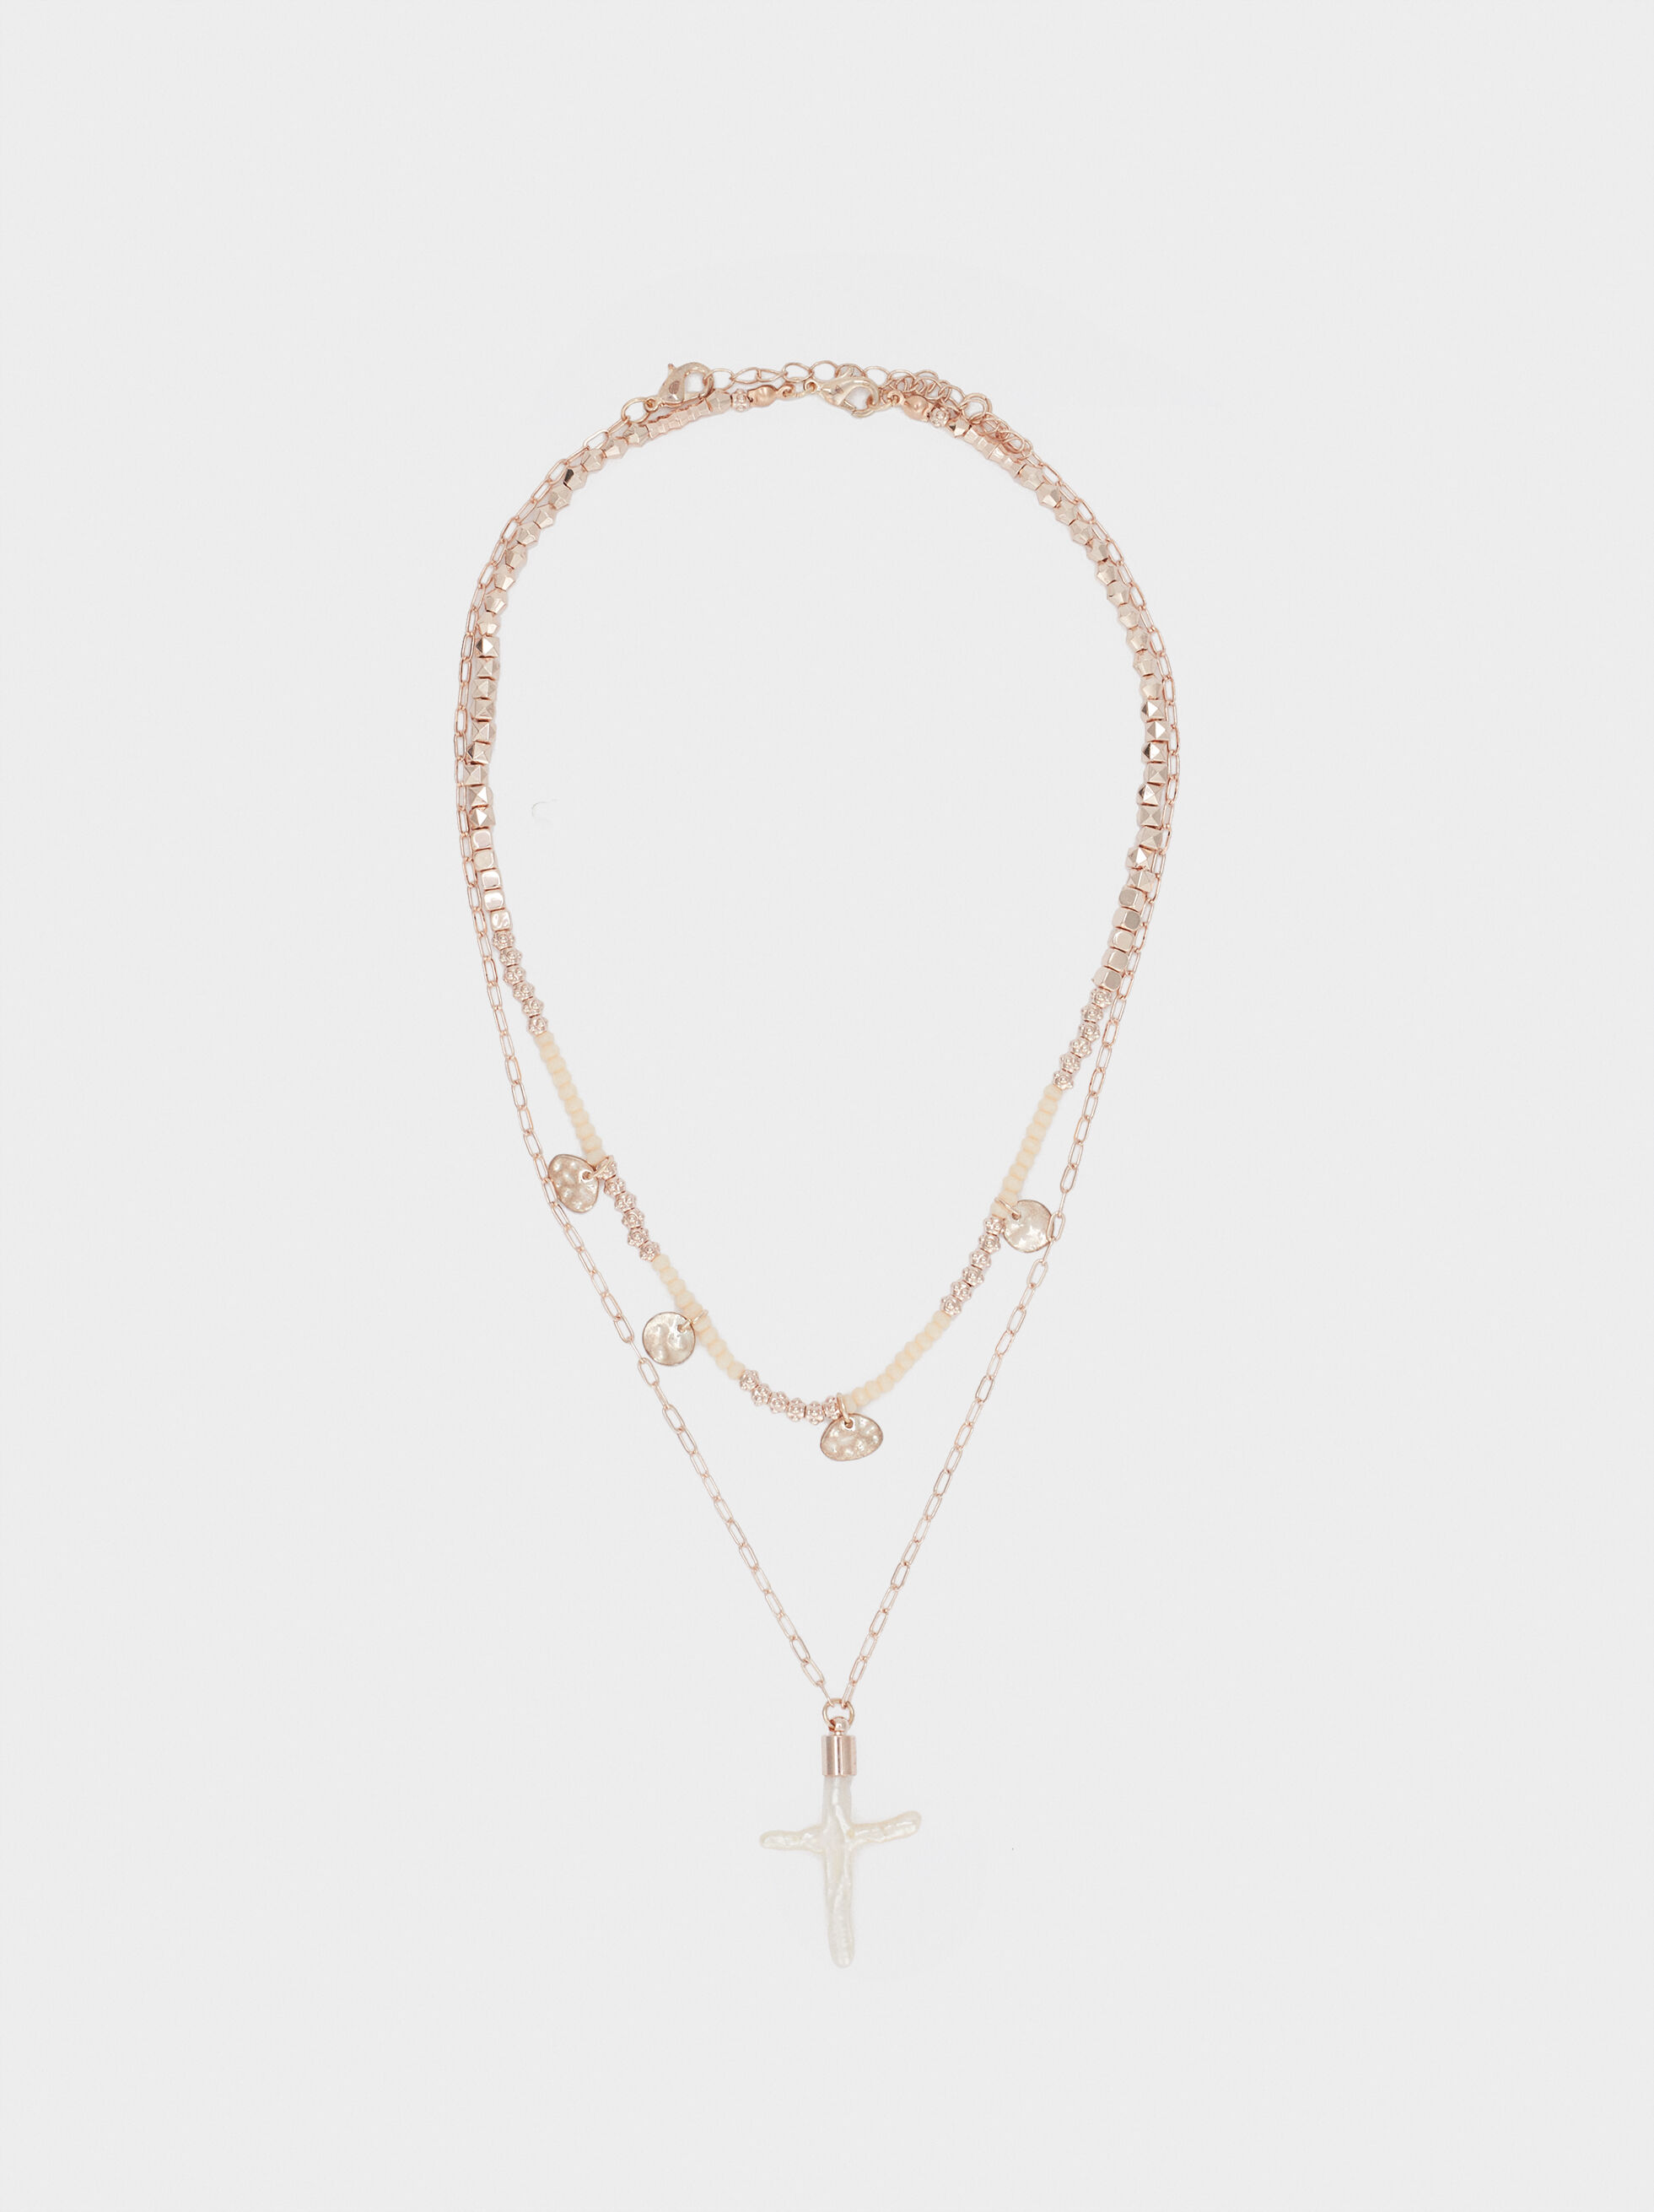 Short Rose Gold Necklace With Cross And Faux Pearl Detail, Orange, hi-res